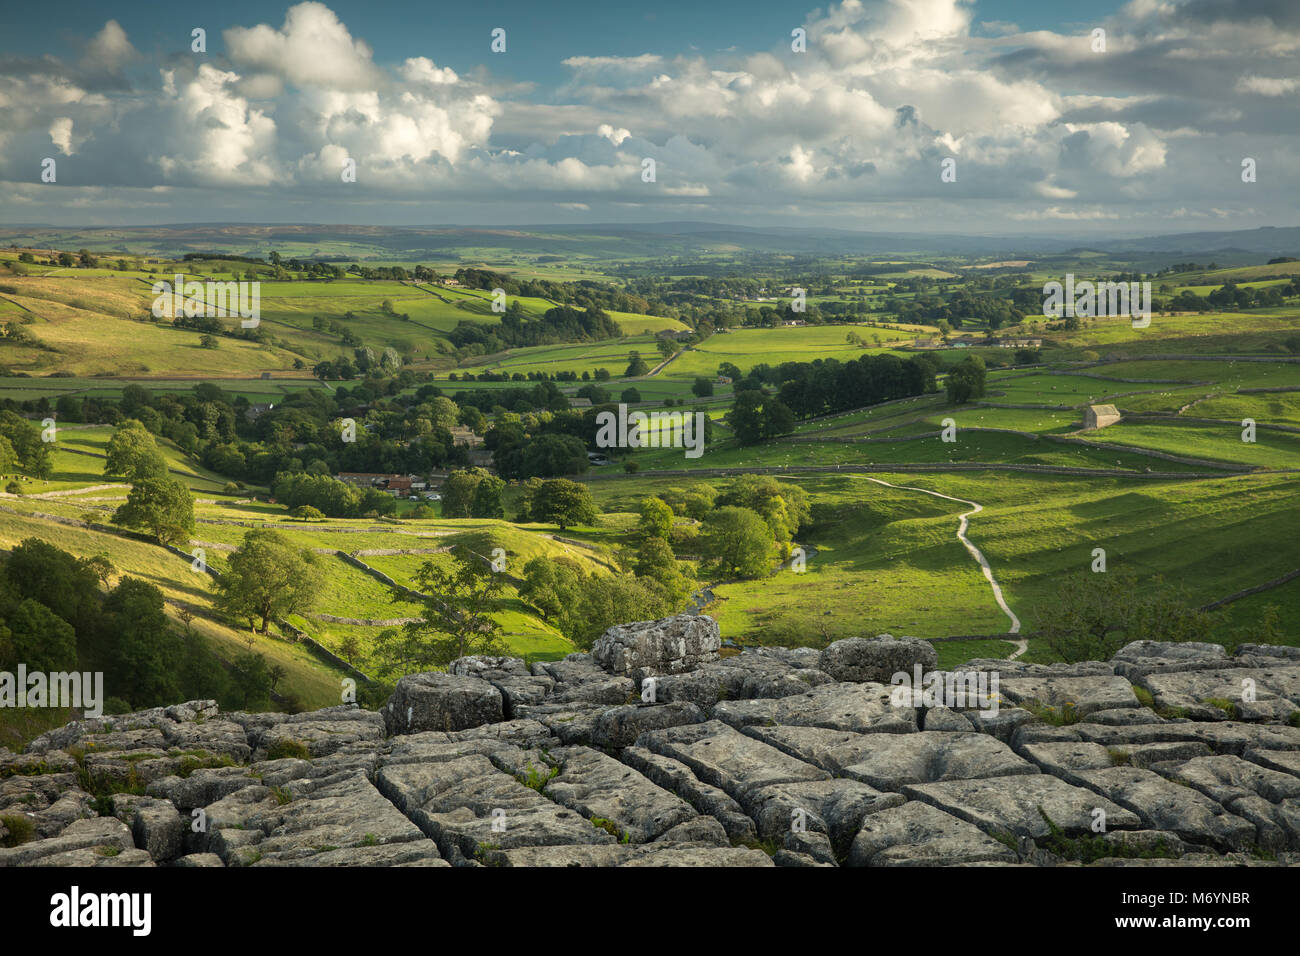 The limestone pavement at Malham Cove, Yorkshire Dales National Park, England, UK - Stock Image